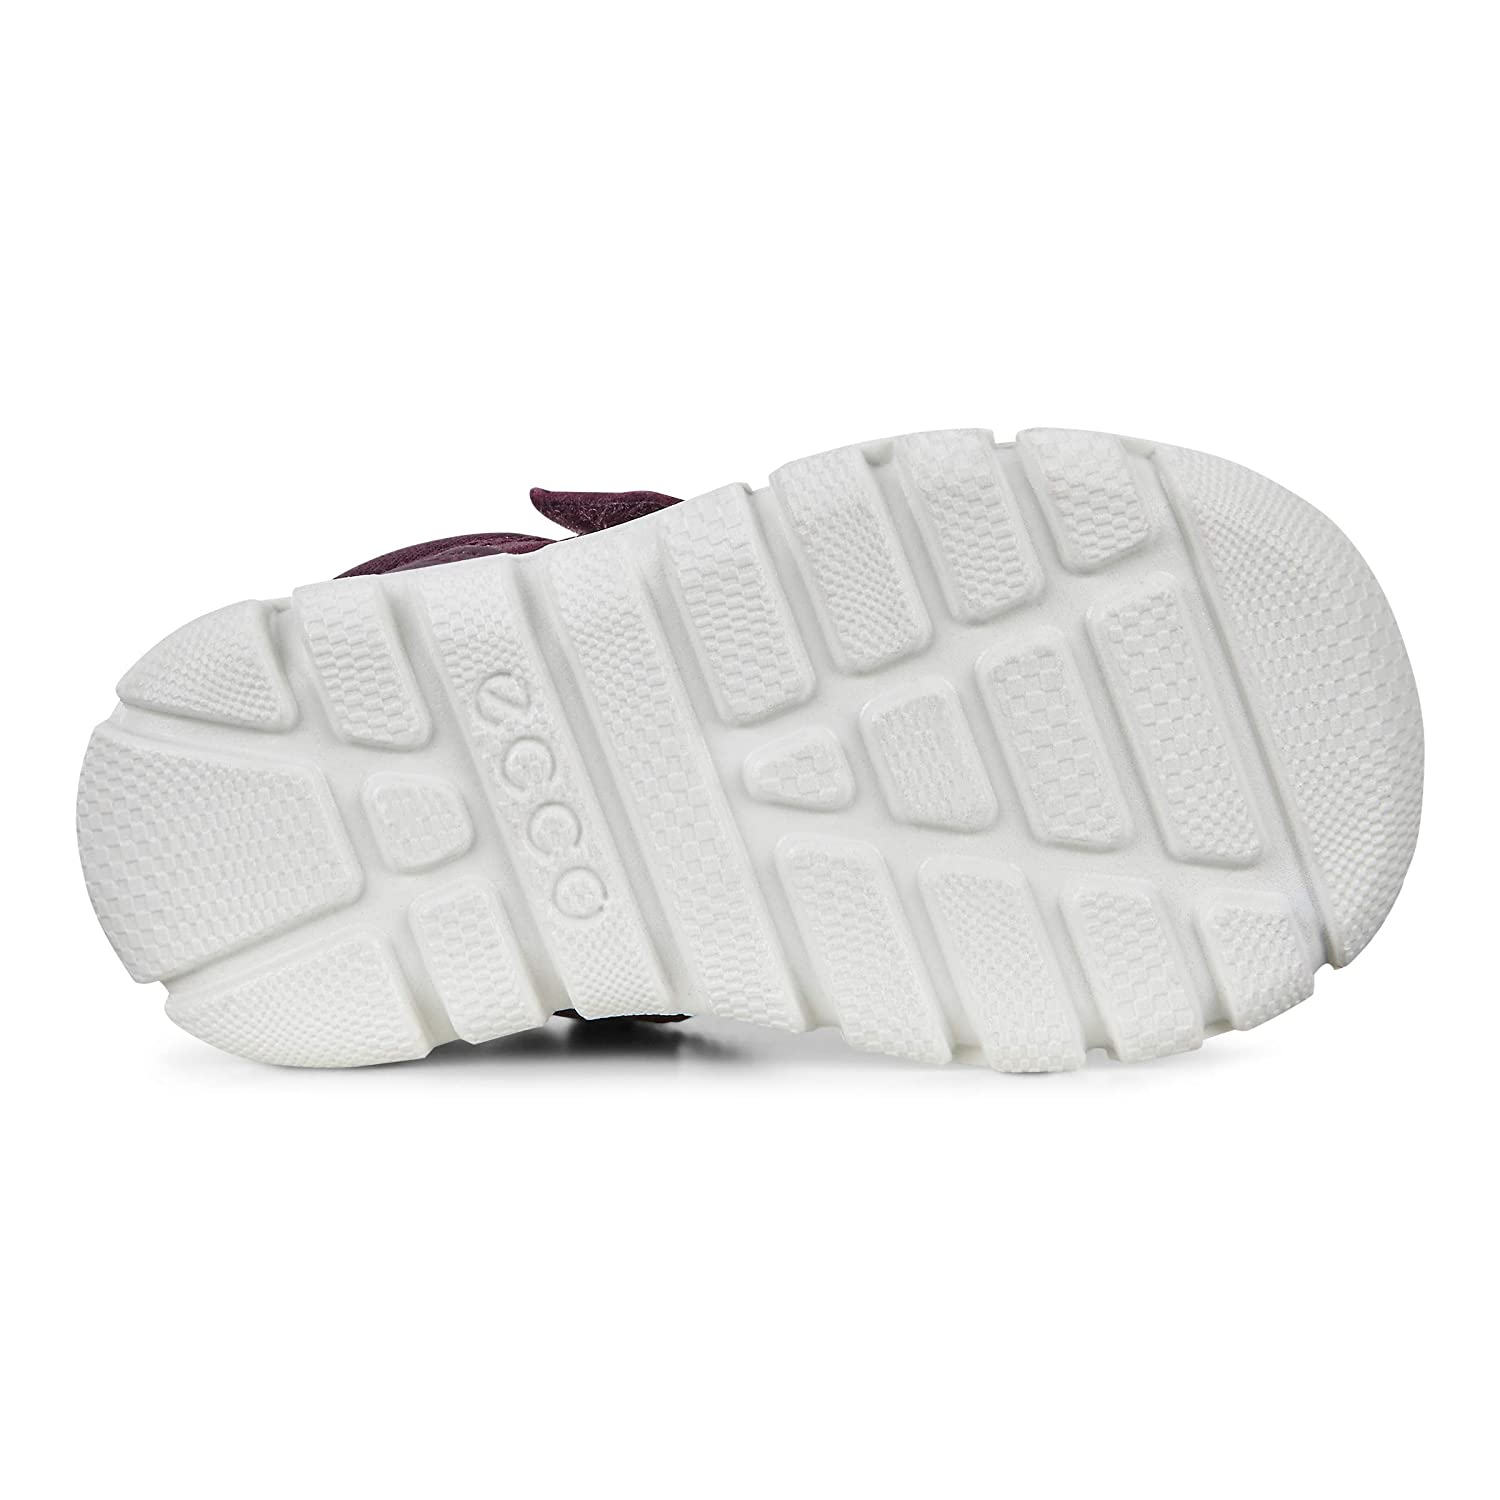 ECCO Intrinsic Mini Zapatillas para Beb/és